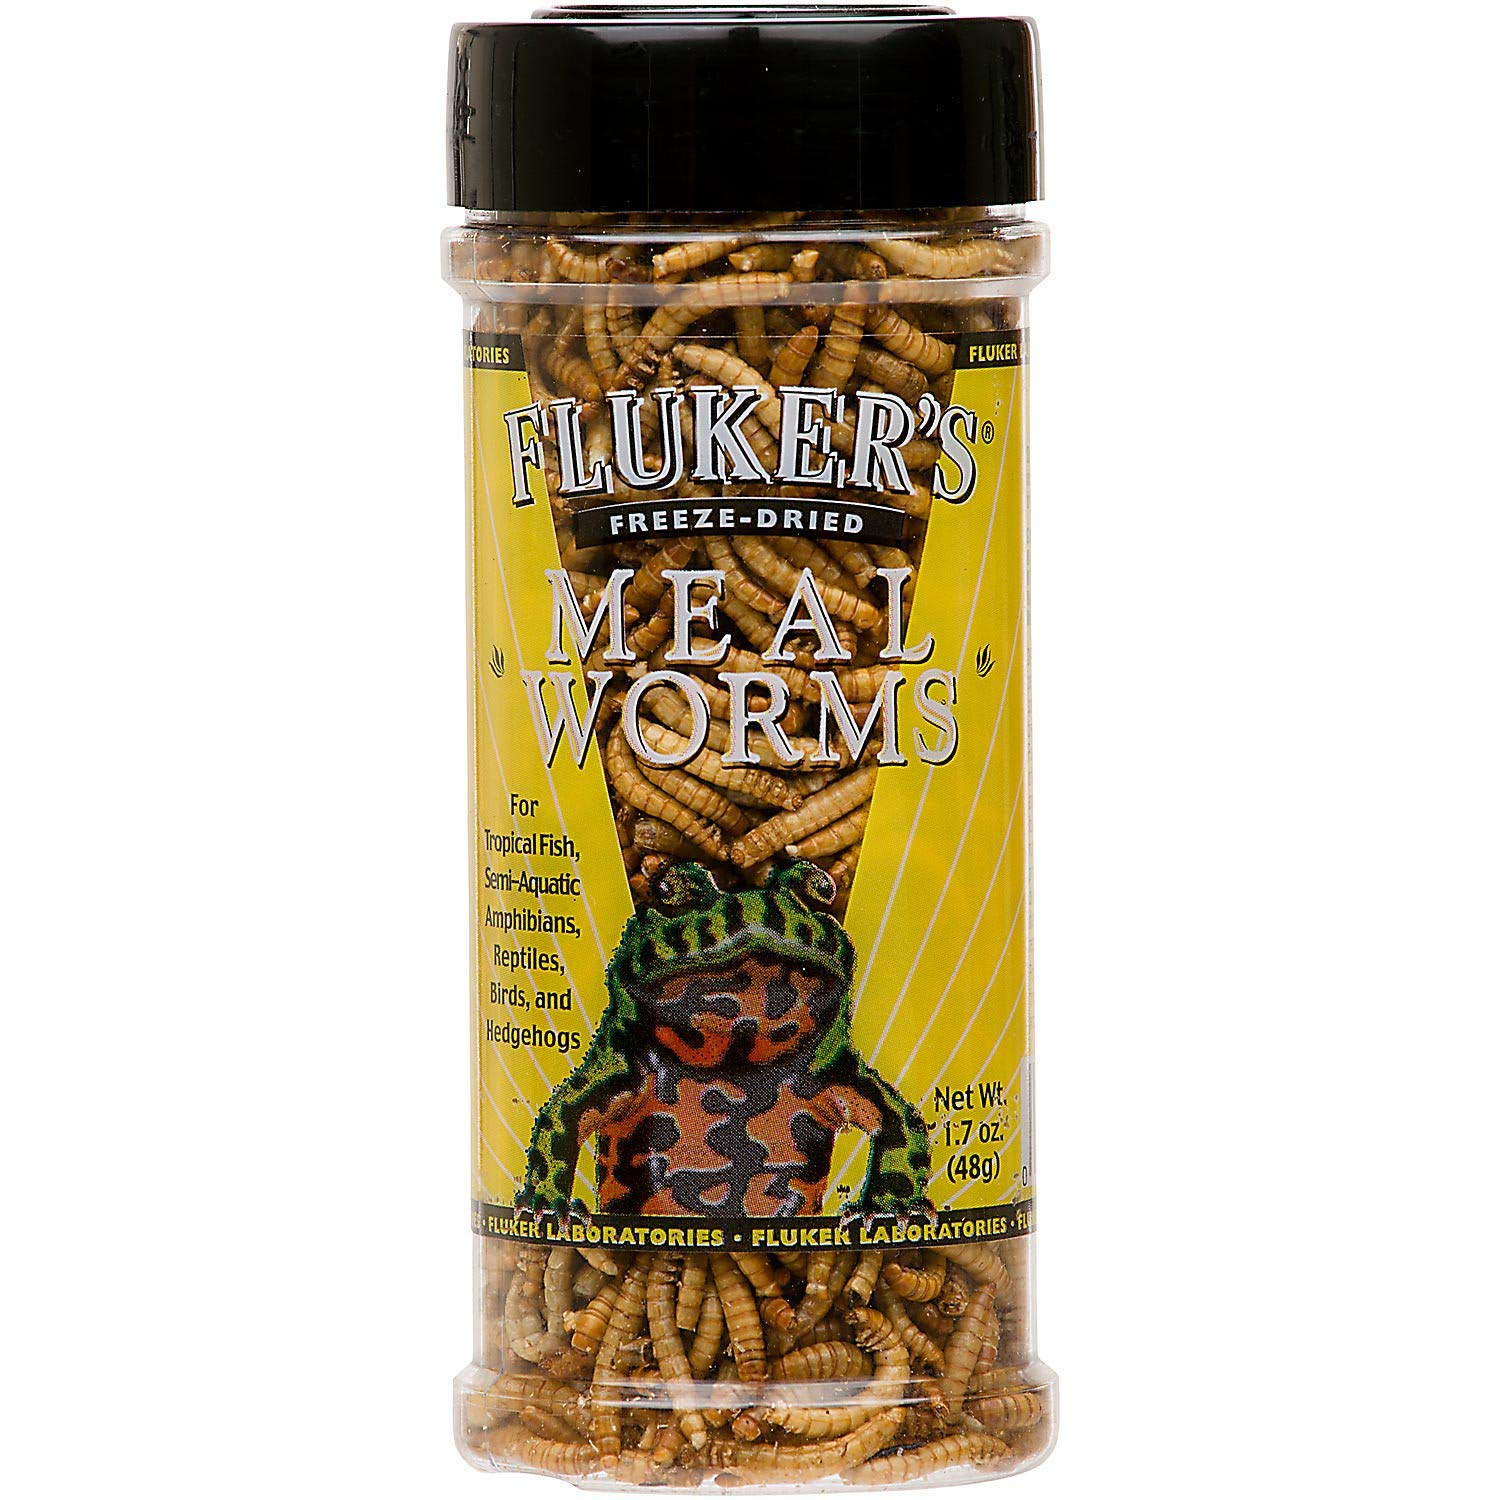 Fluker's Freeze Dried Mealworms Pet Food, 1.7-Ounce